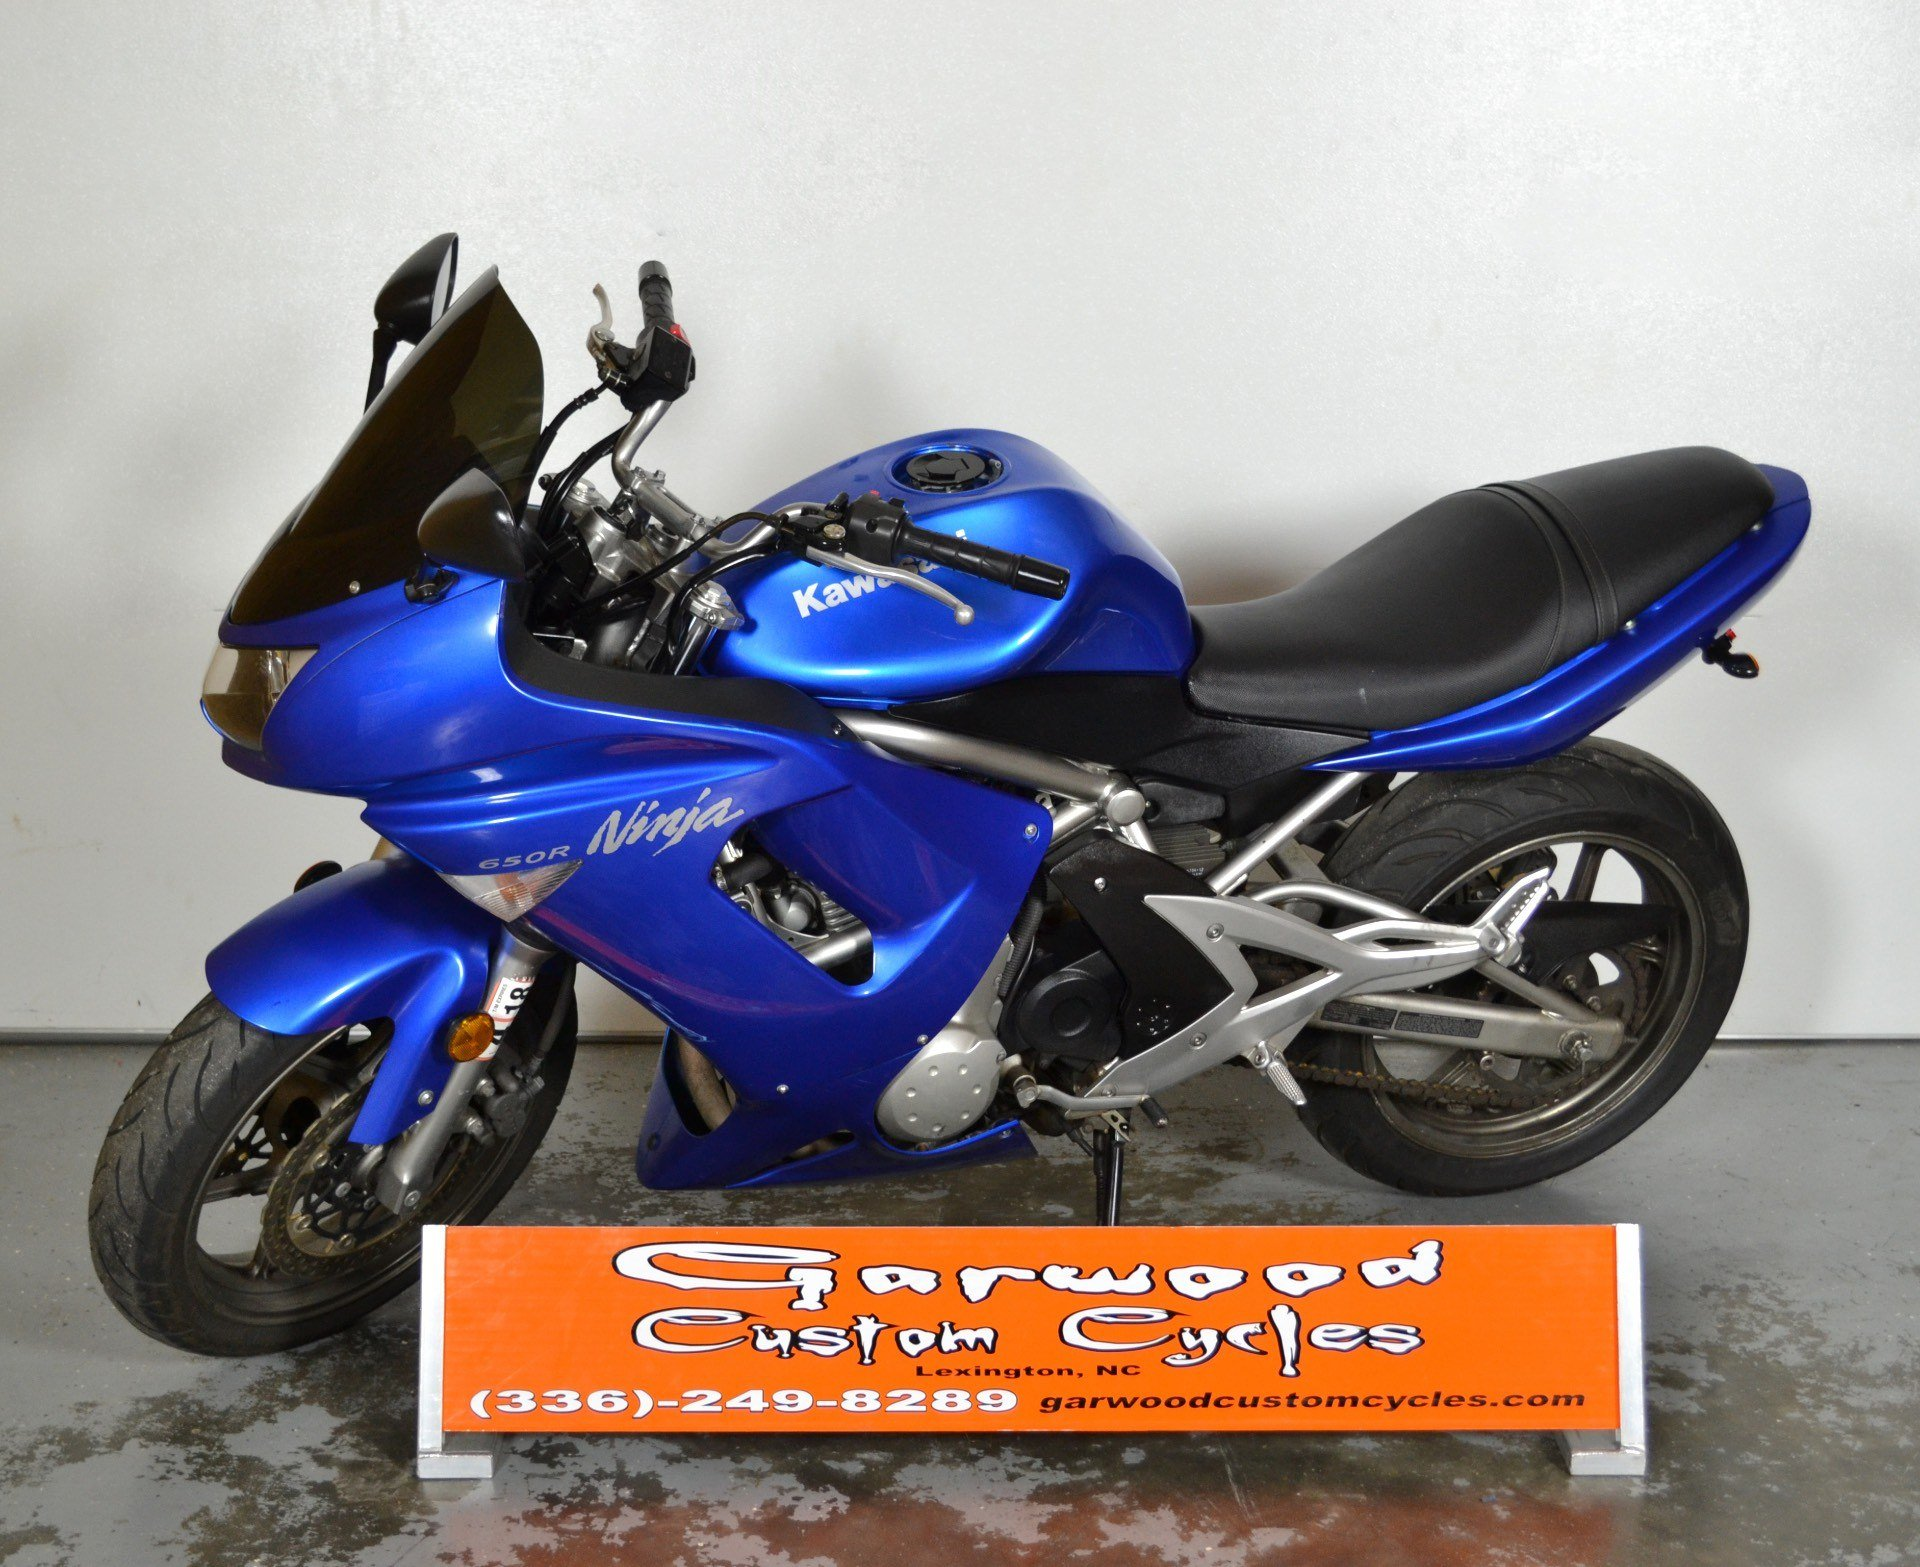 2007 Kawasaki NINJA 650R in Lexington, North Carolina